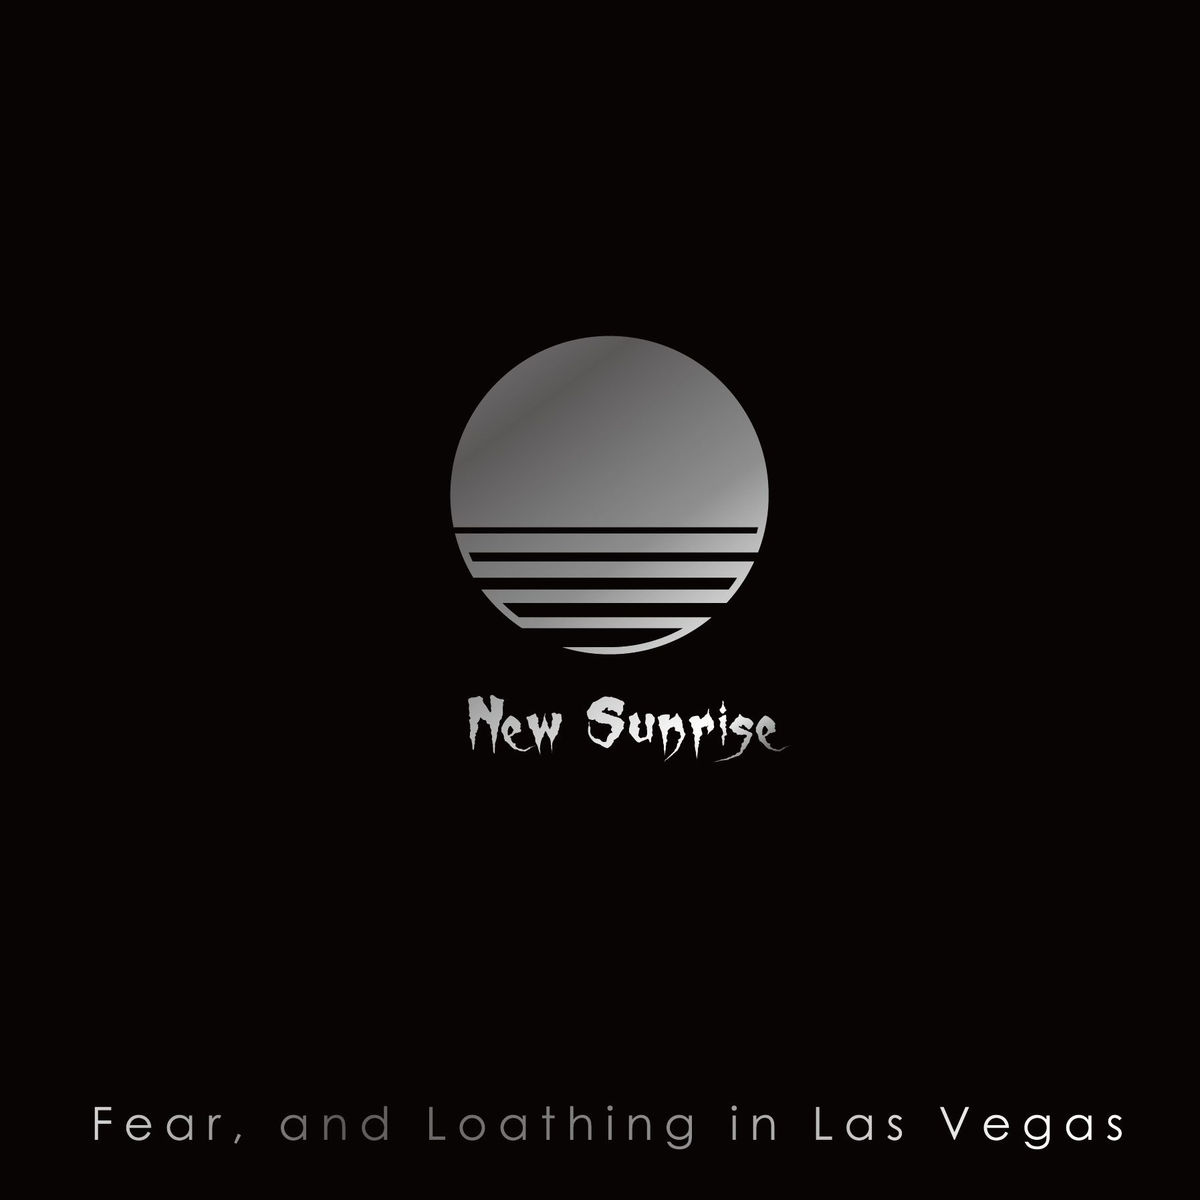 fear and loathing in las vegas album new sunrise download